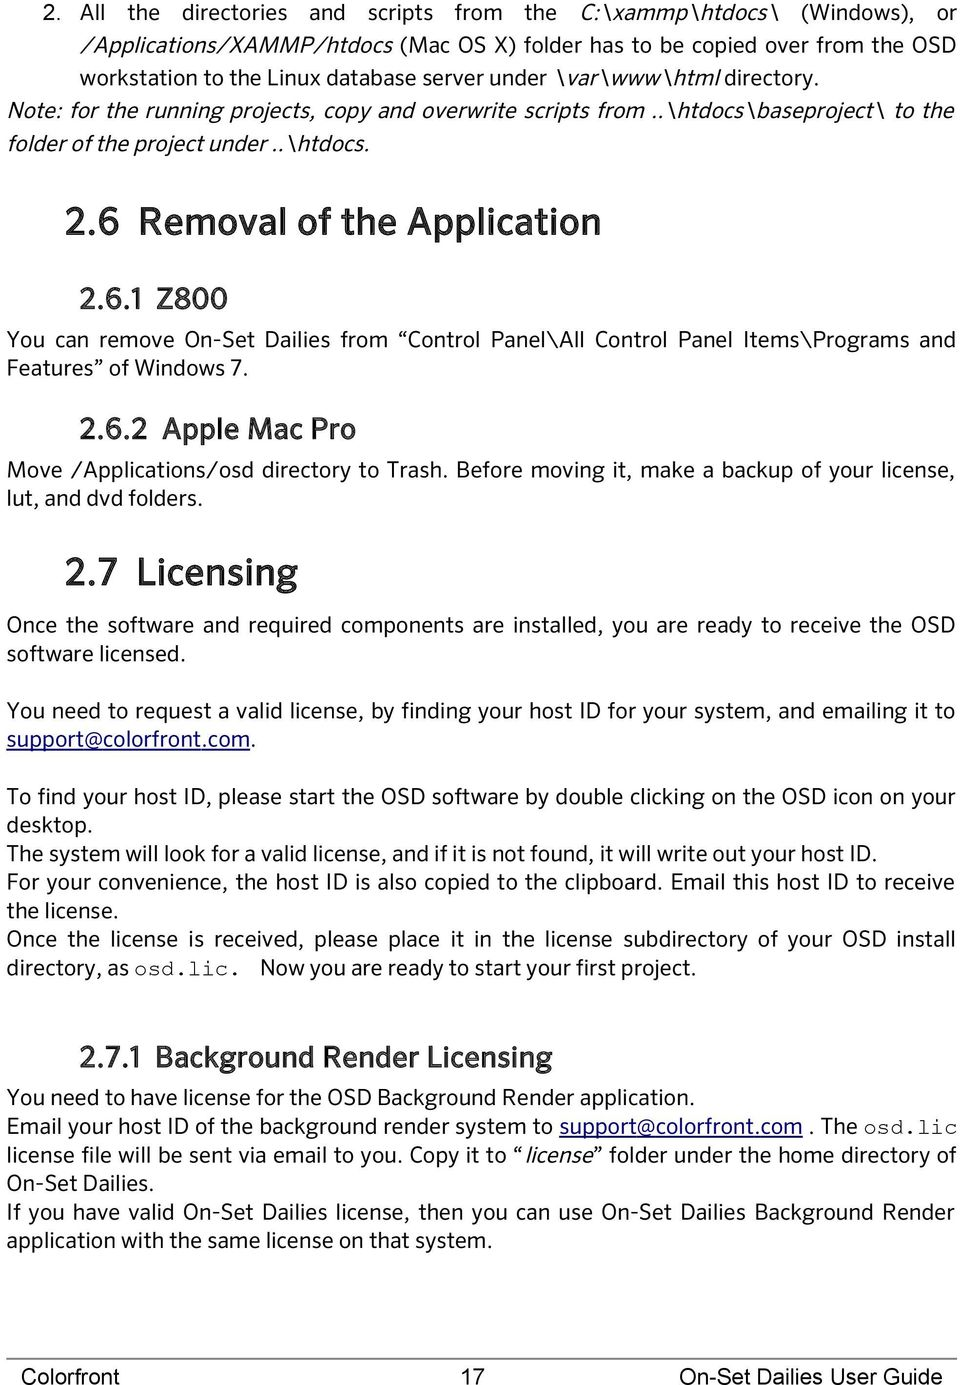 Removal of the Application 2.6.1 Z800 You can remove On-Set Dailies from Control Panel\All Control Panel Items\Programs and Features of Windows 7. 2.6.2 Apple Mac Pro Move /Applications/osd directory to Trash.